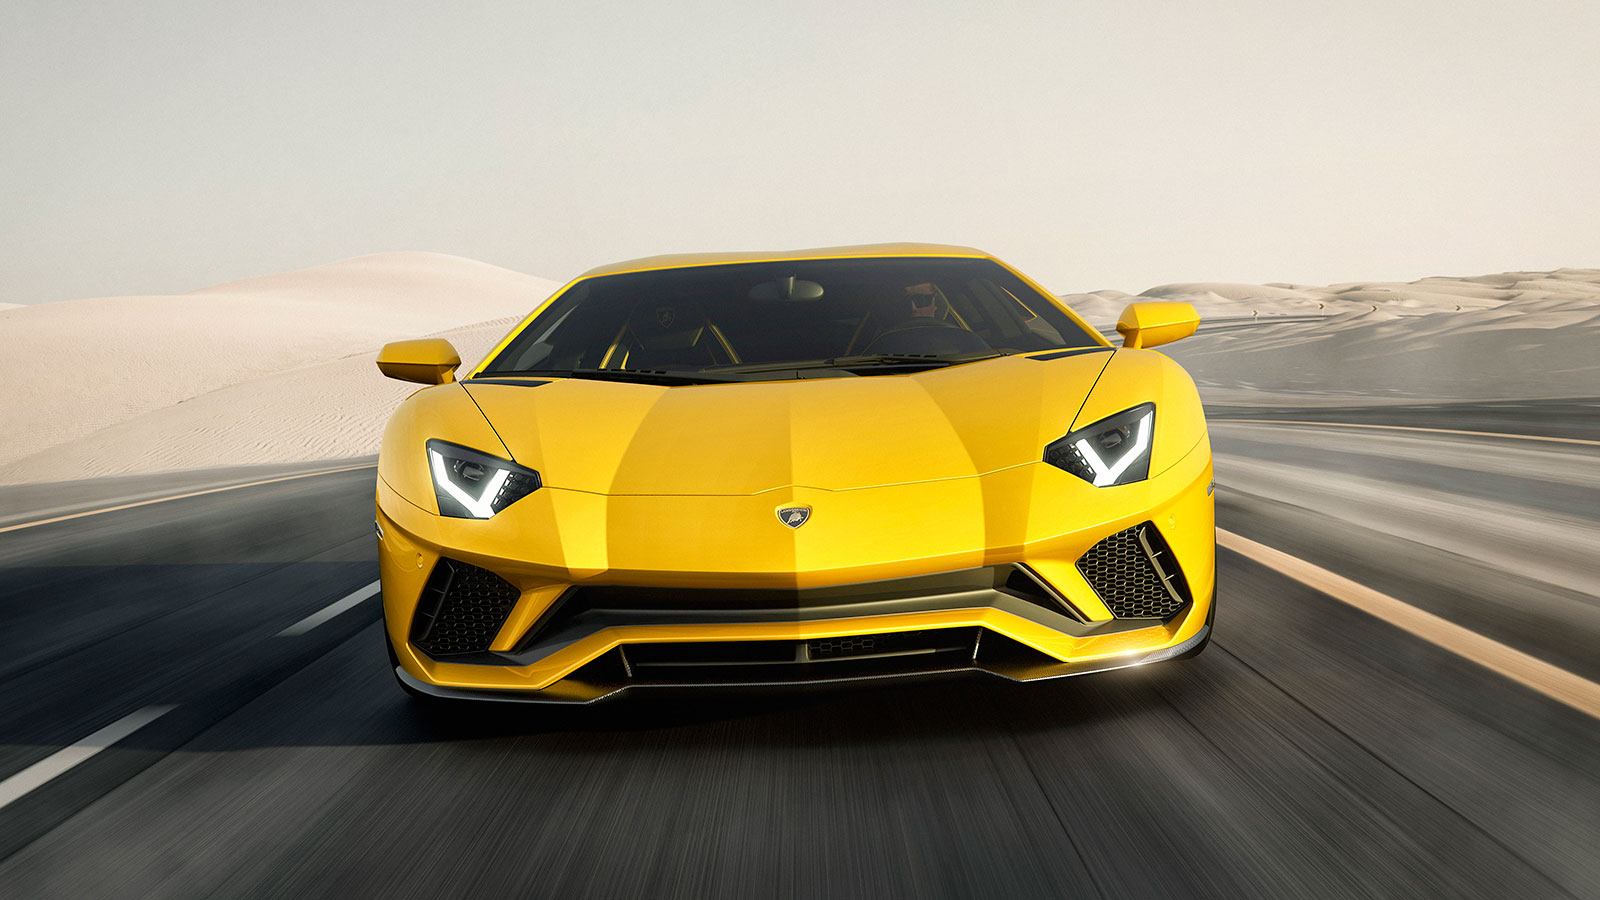 Lamborghini Aventador S Coupe - The Icon Reborn image 40